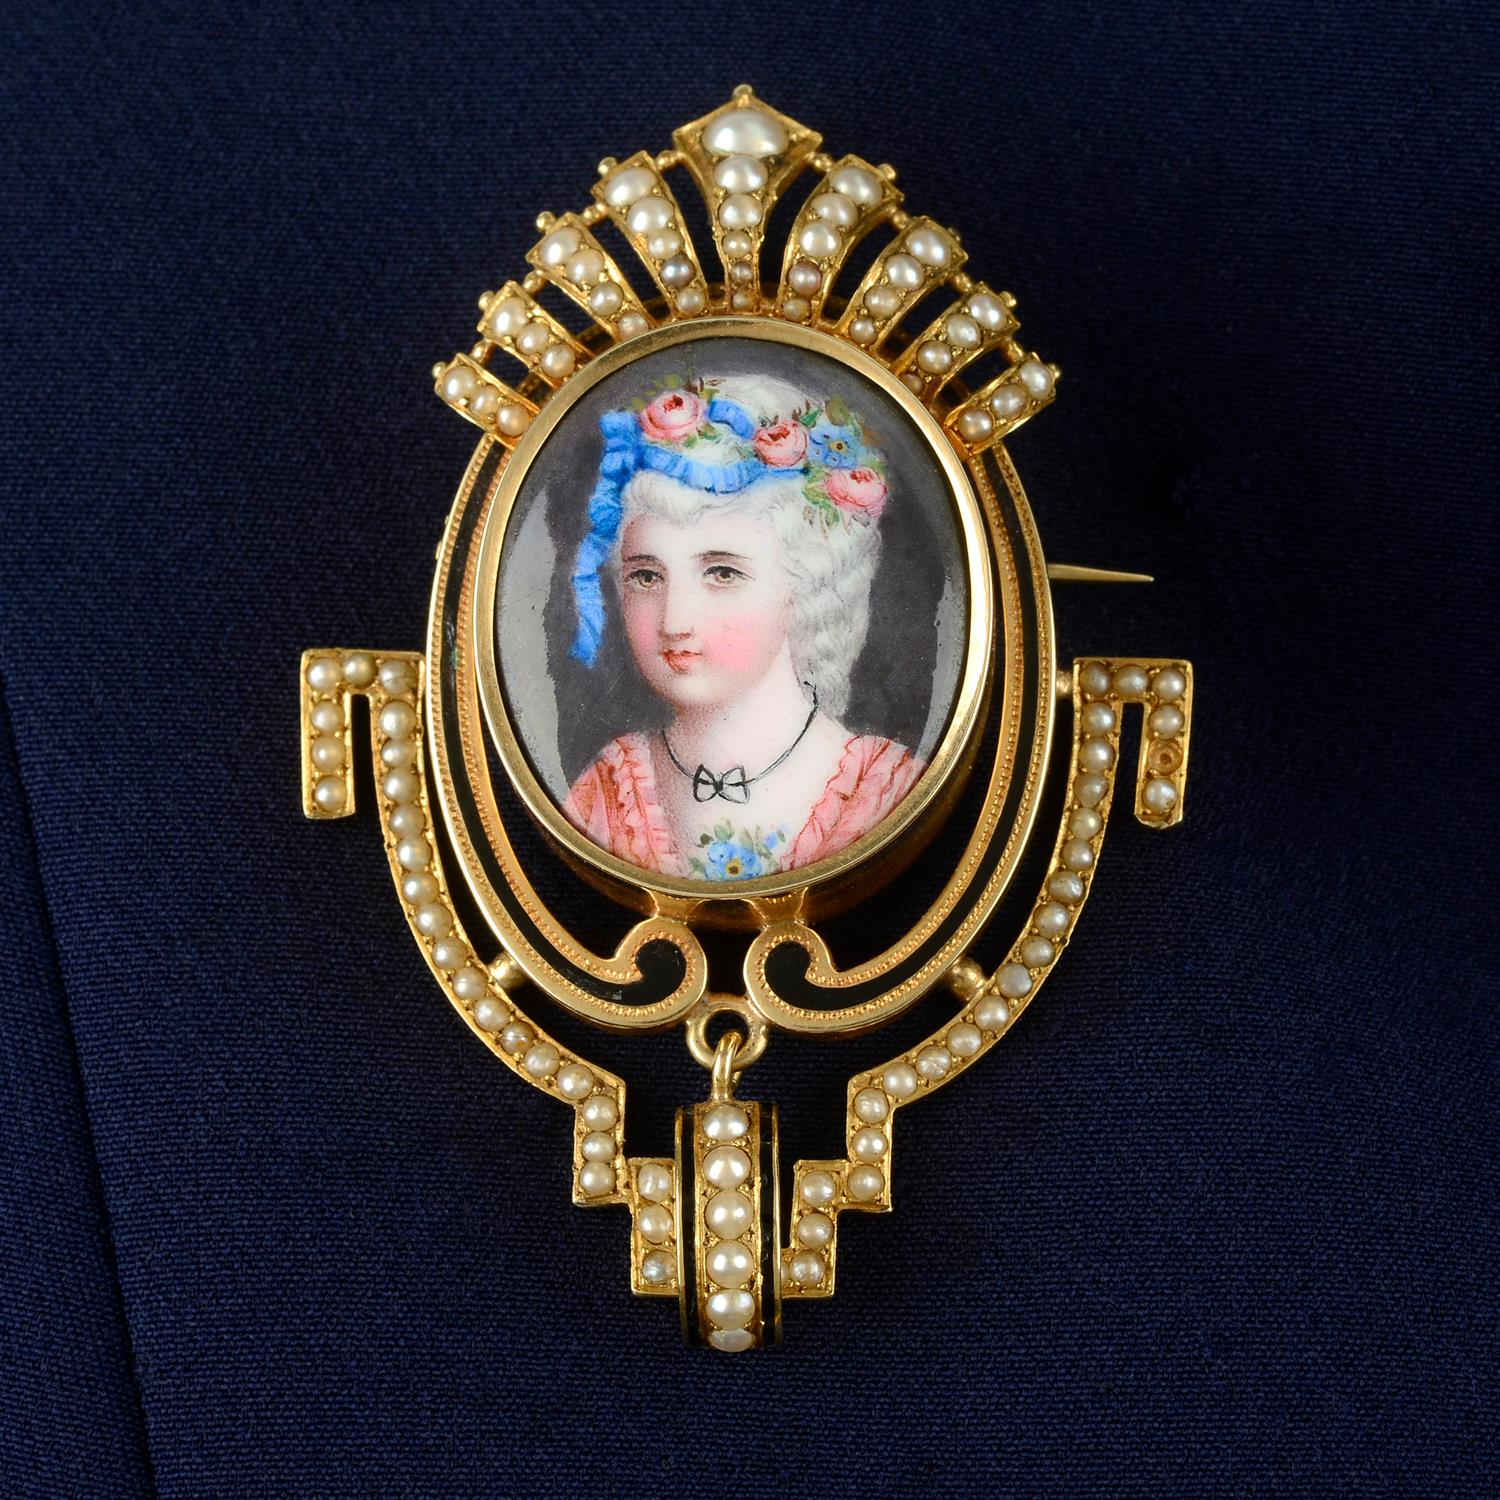 A late 19th century gold, enamel portrait and split pearl brooch, with matching earrings.